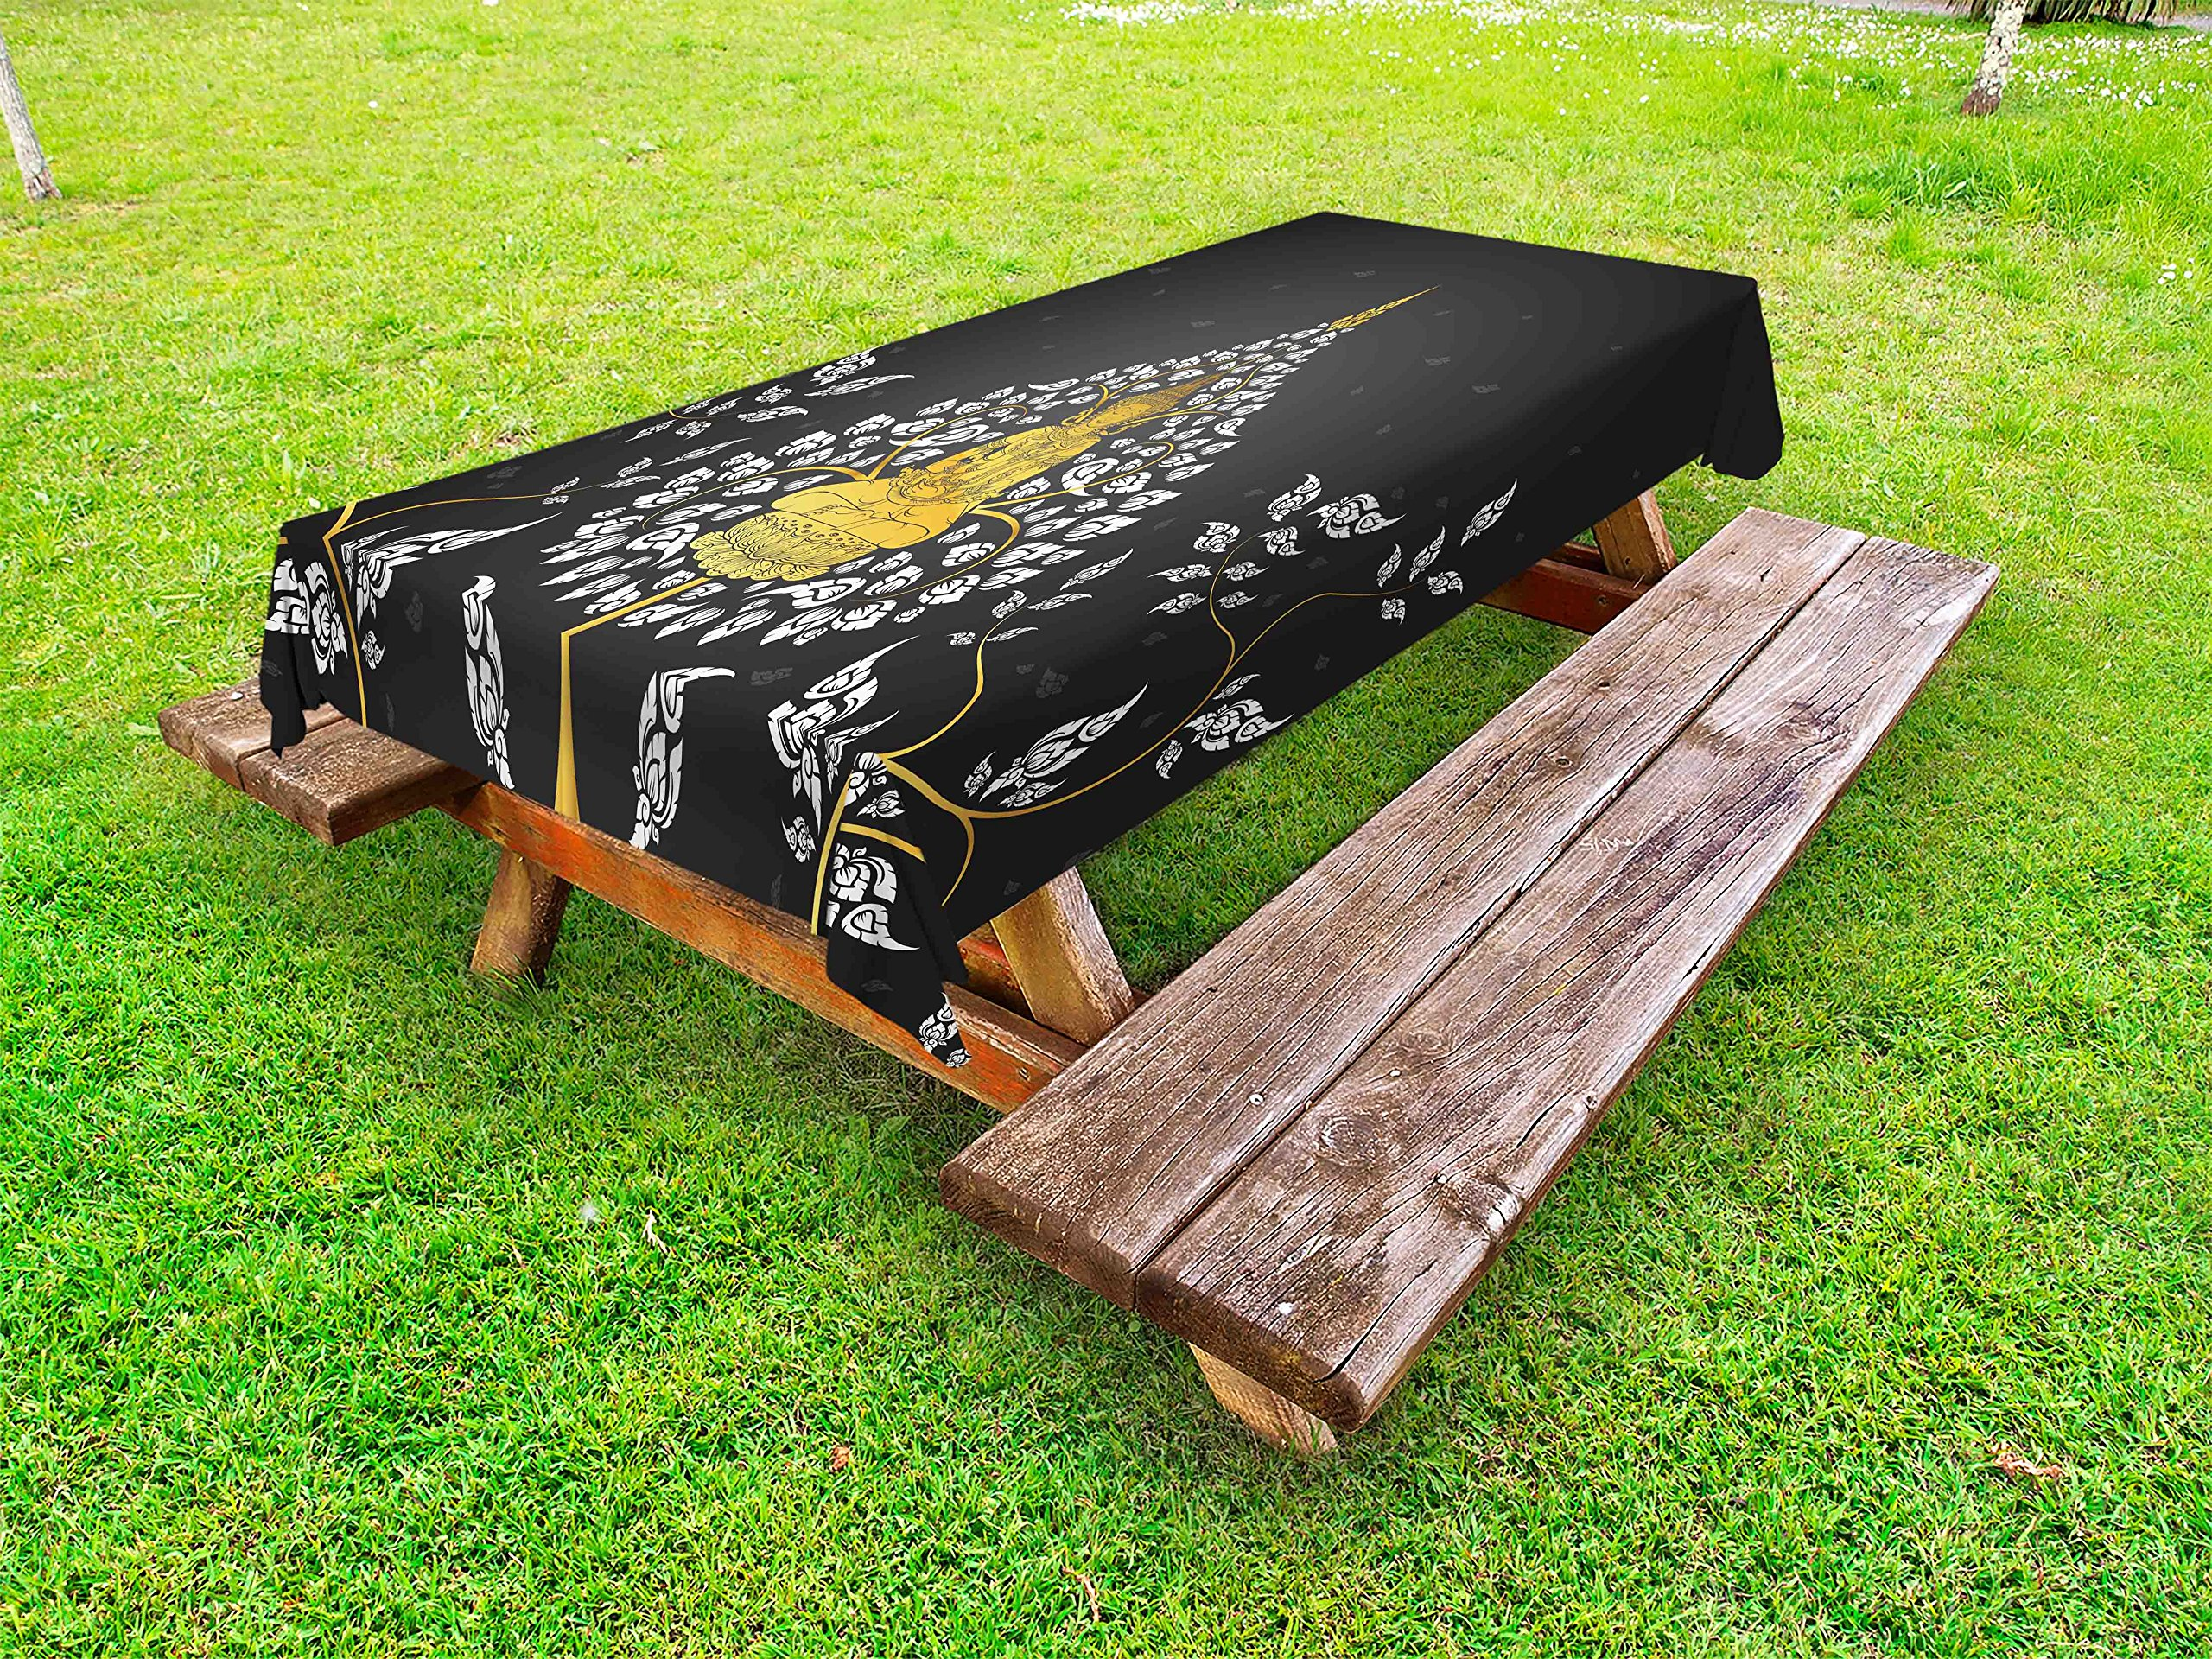 Lunarable Asian Outdoor Tablecloth, Ancient Religious Thai Character with Floral Elements Meditation, Decorative Washable Picnic Table Cloth, 58 X 84 Inches, Charcoal Grey White Yellow by Lunarable